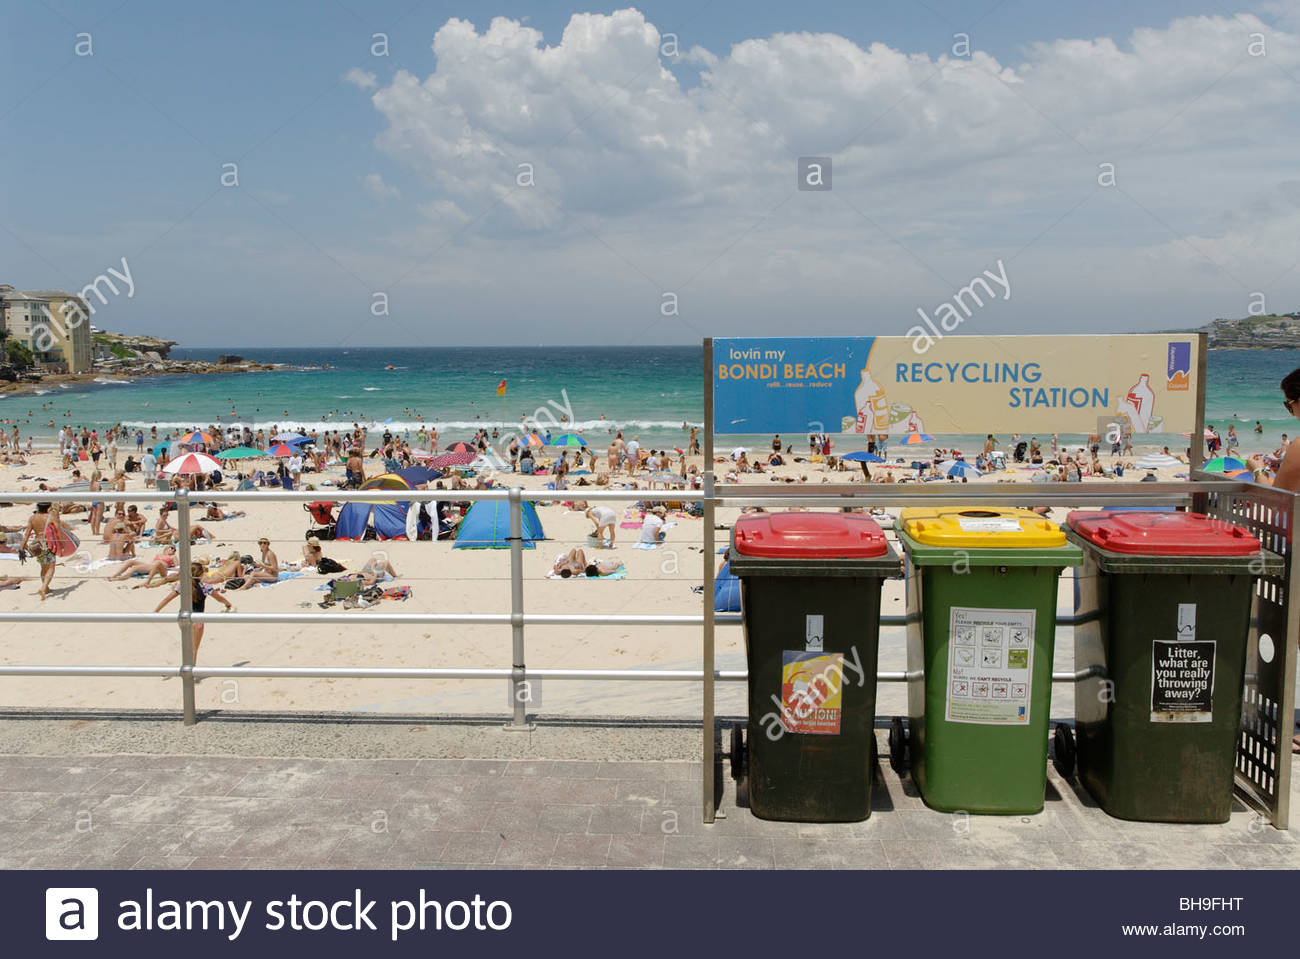 separate rubbish bins for recycling on Bondi Beach - Stock Image